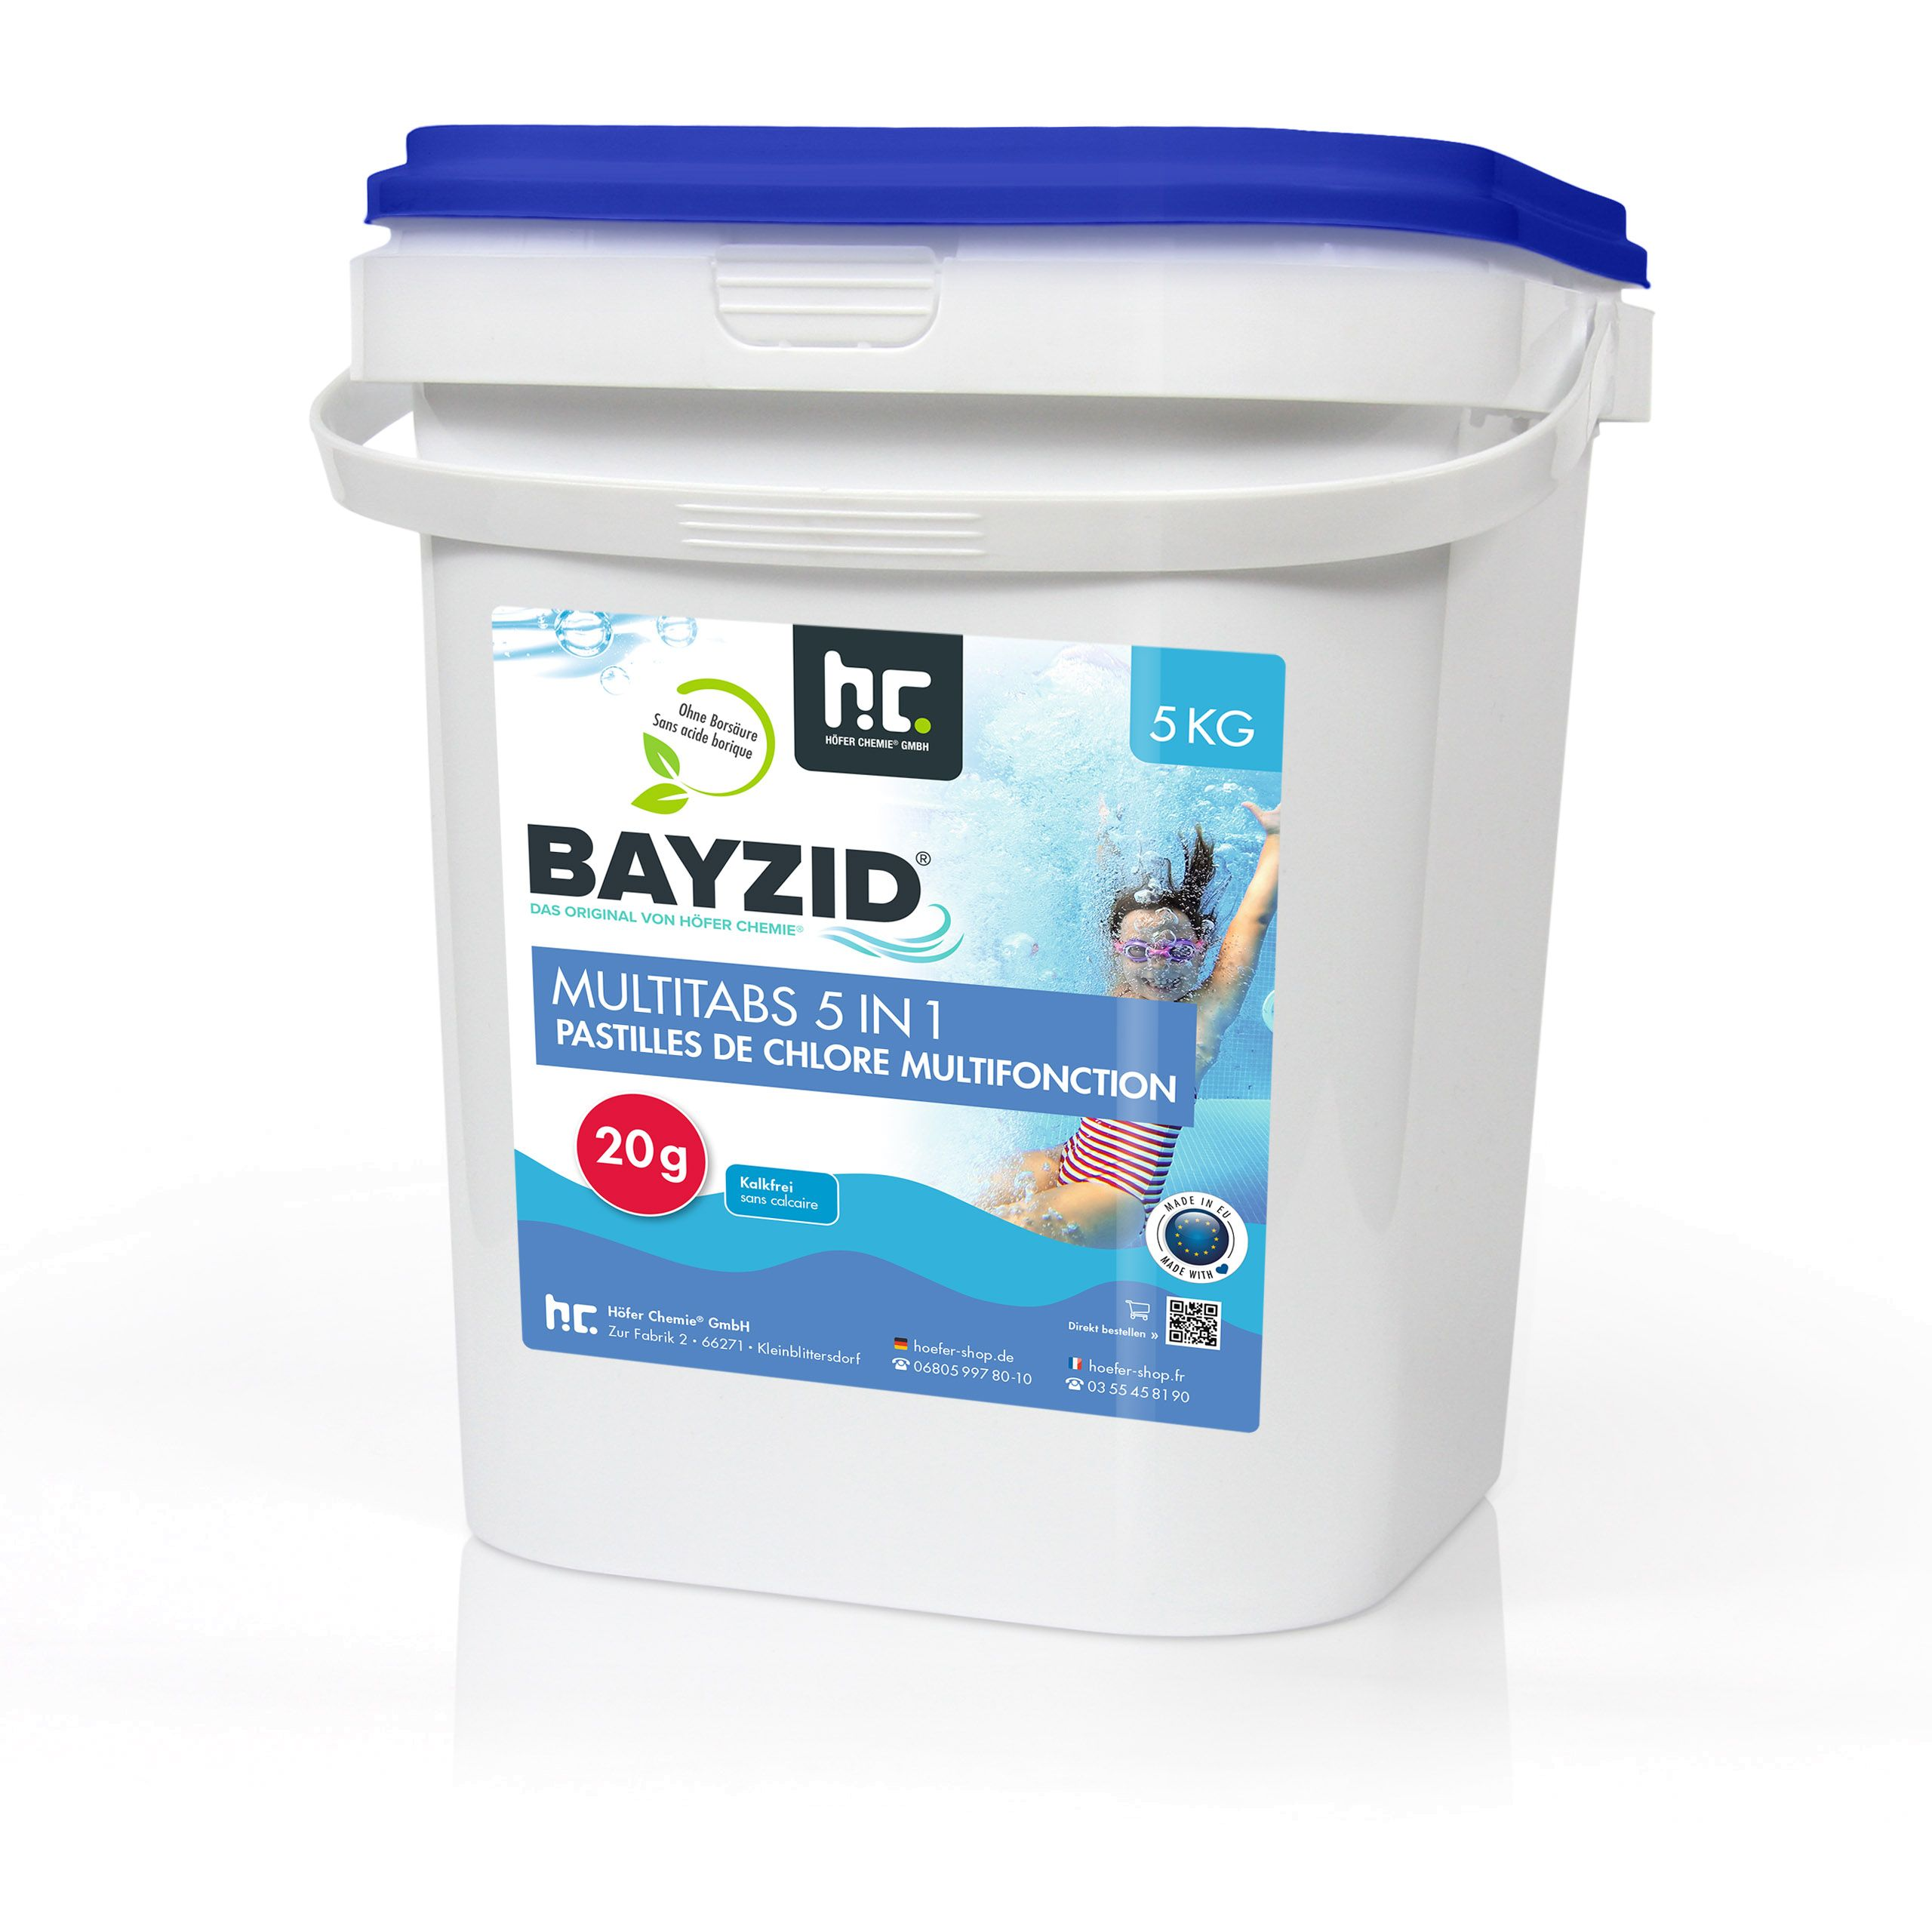 Höfer BAYZID Multitabs 20 g 5 in 1 - 5 kg